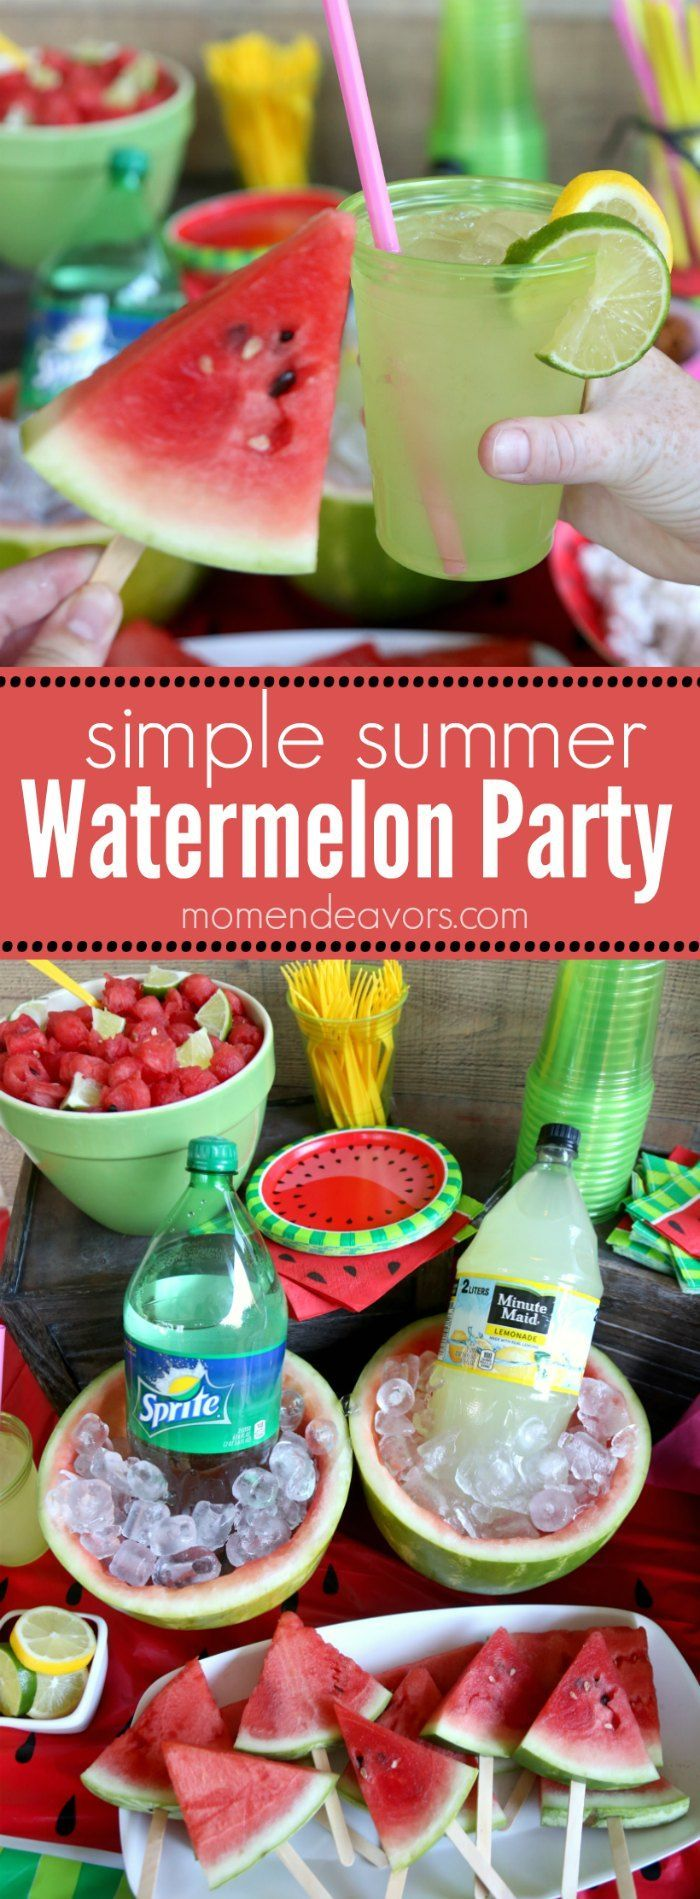 Summer Watermelon Party Ideas Some Cute Simple And Fun